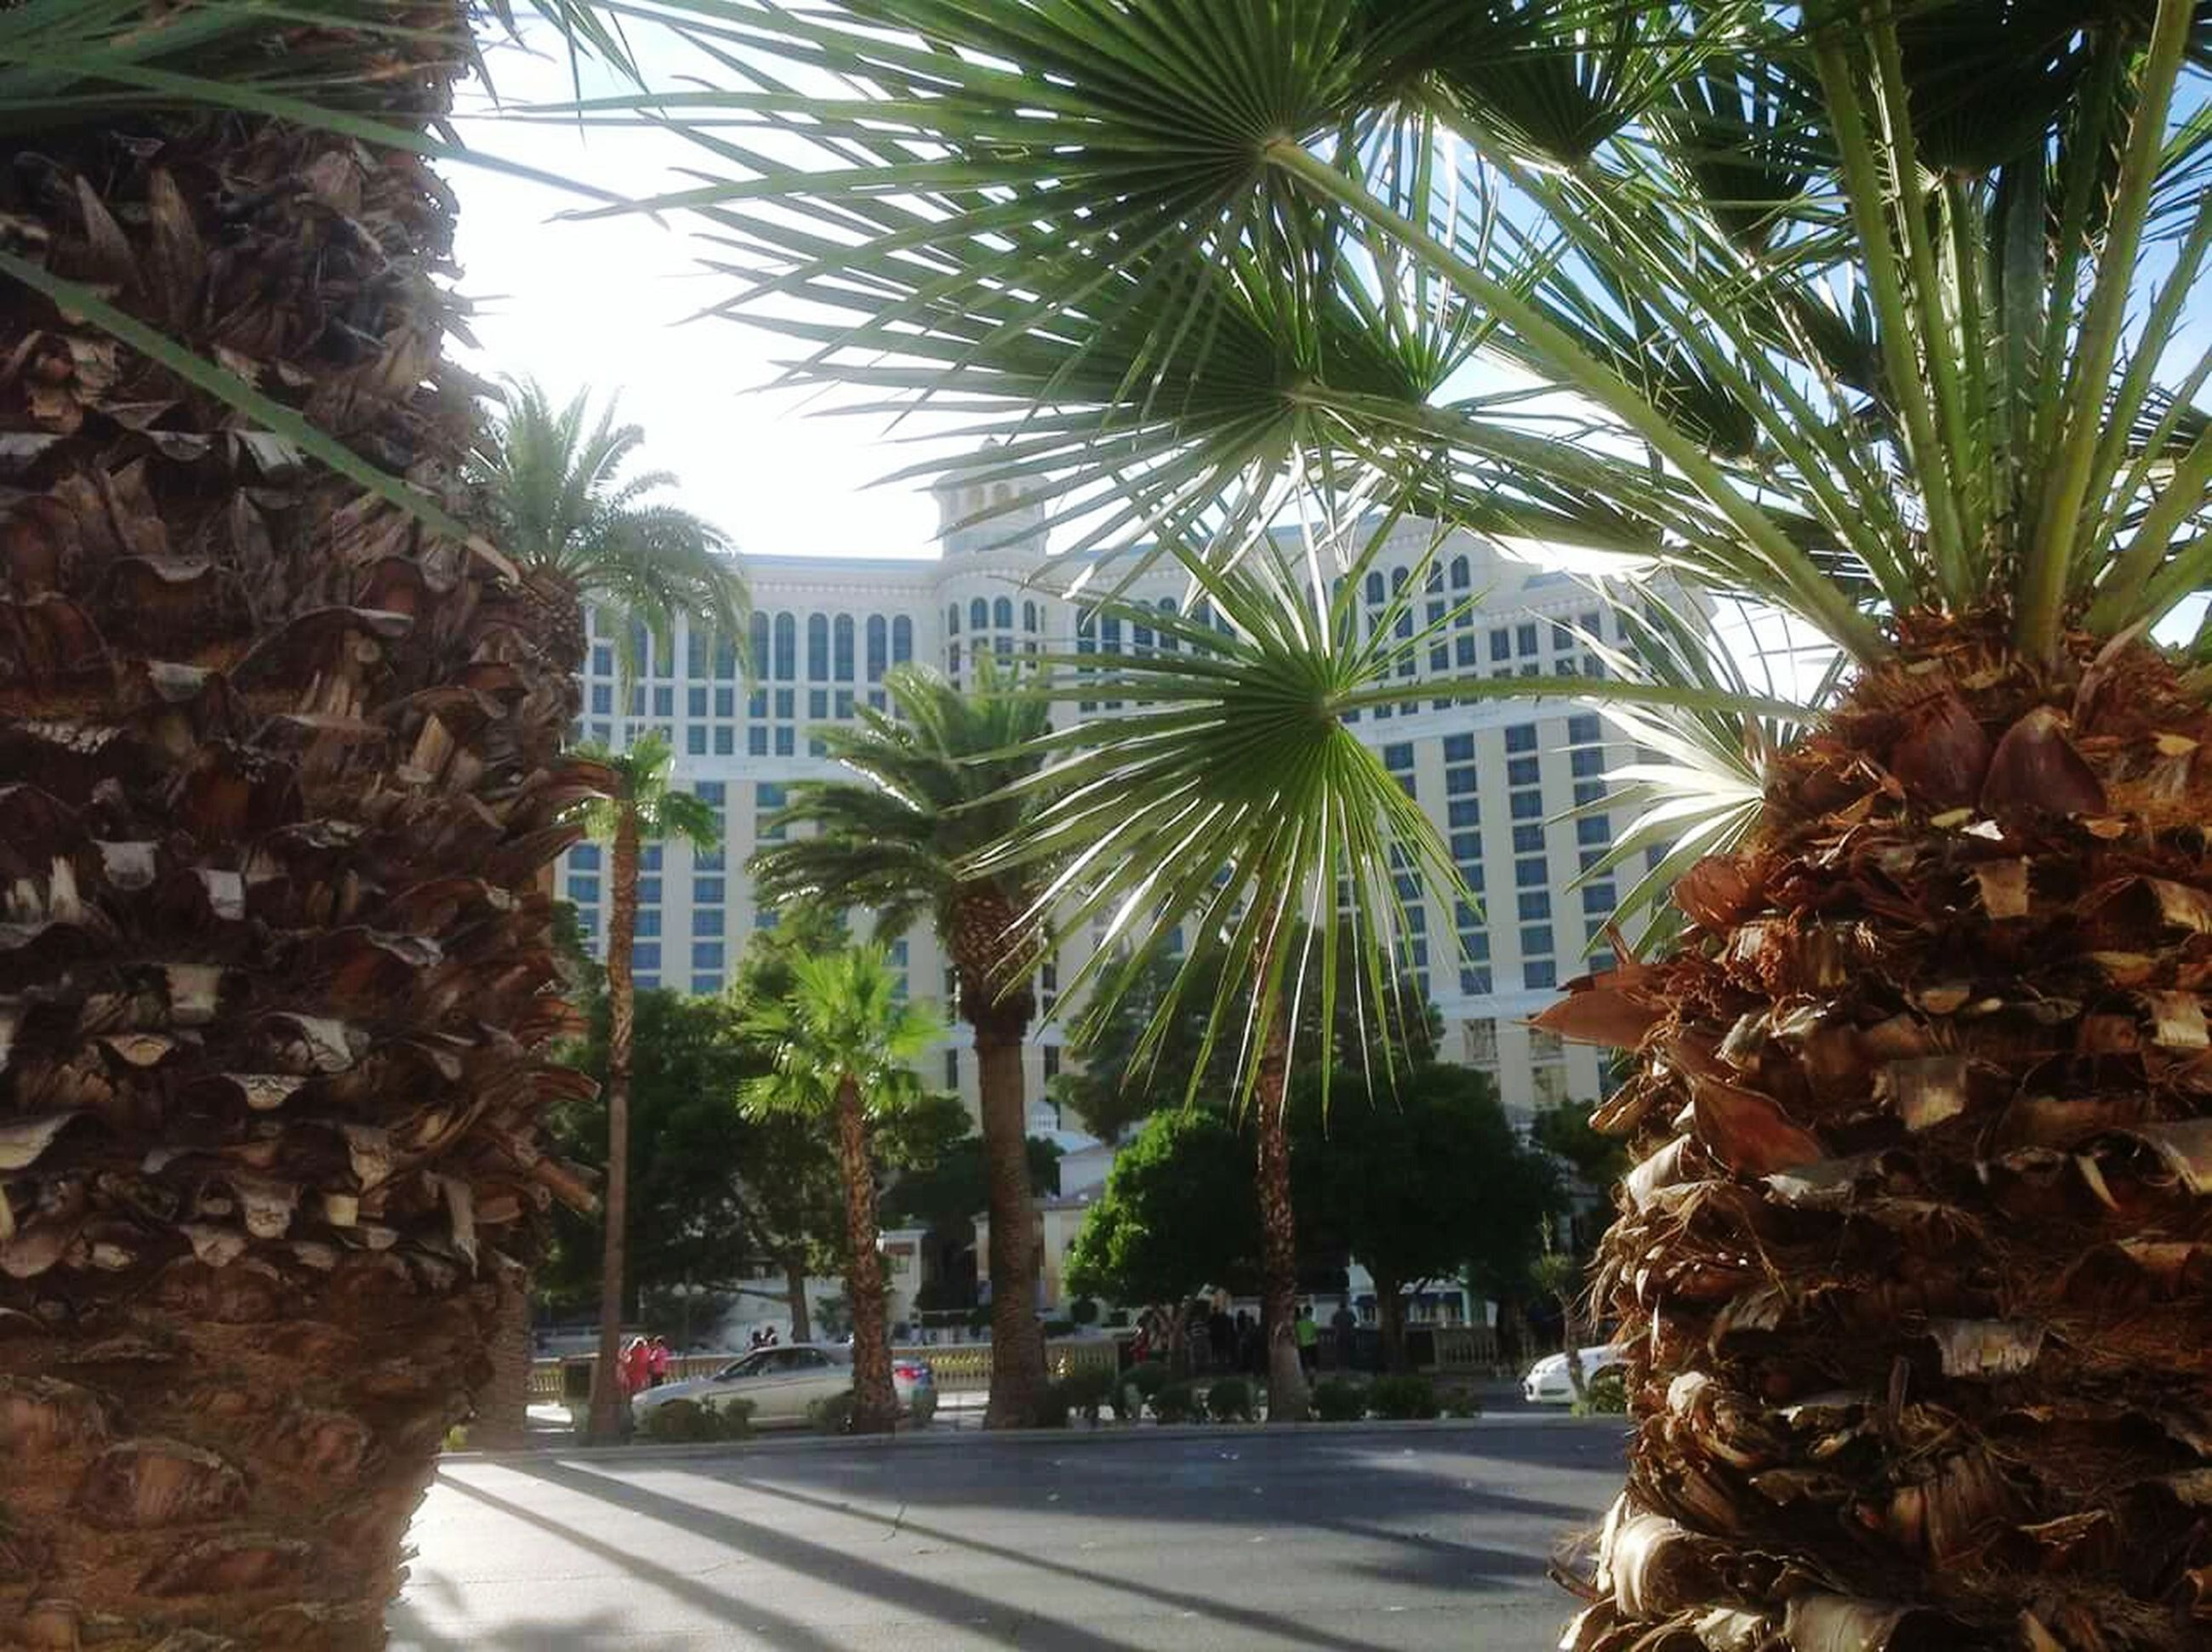 palm tree, tree, architecture, built structure, building exterior, growth, low angle view, tree trunk, leaf, tall - high, day, city, sky, clear sky, street, coconut palm tree, outdoors, branch, green color, sunlight